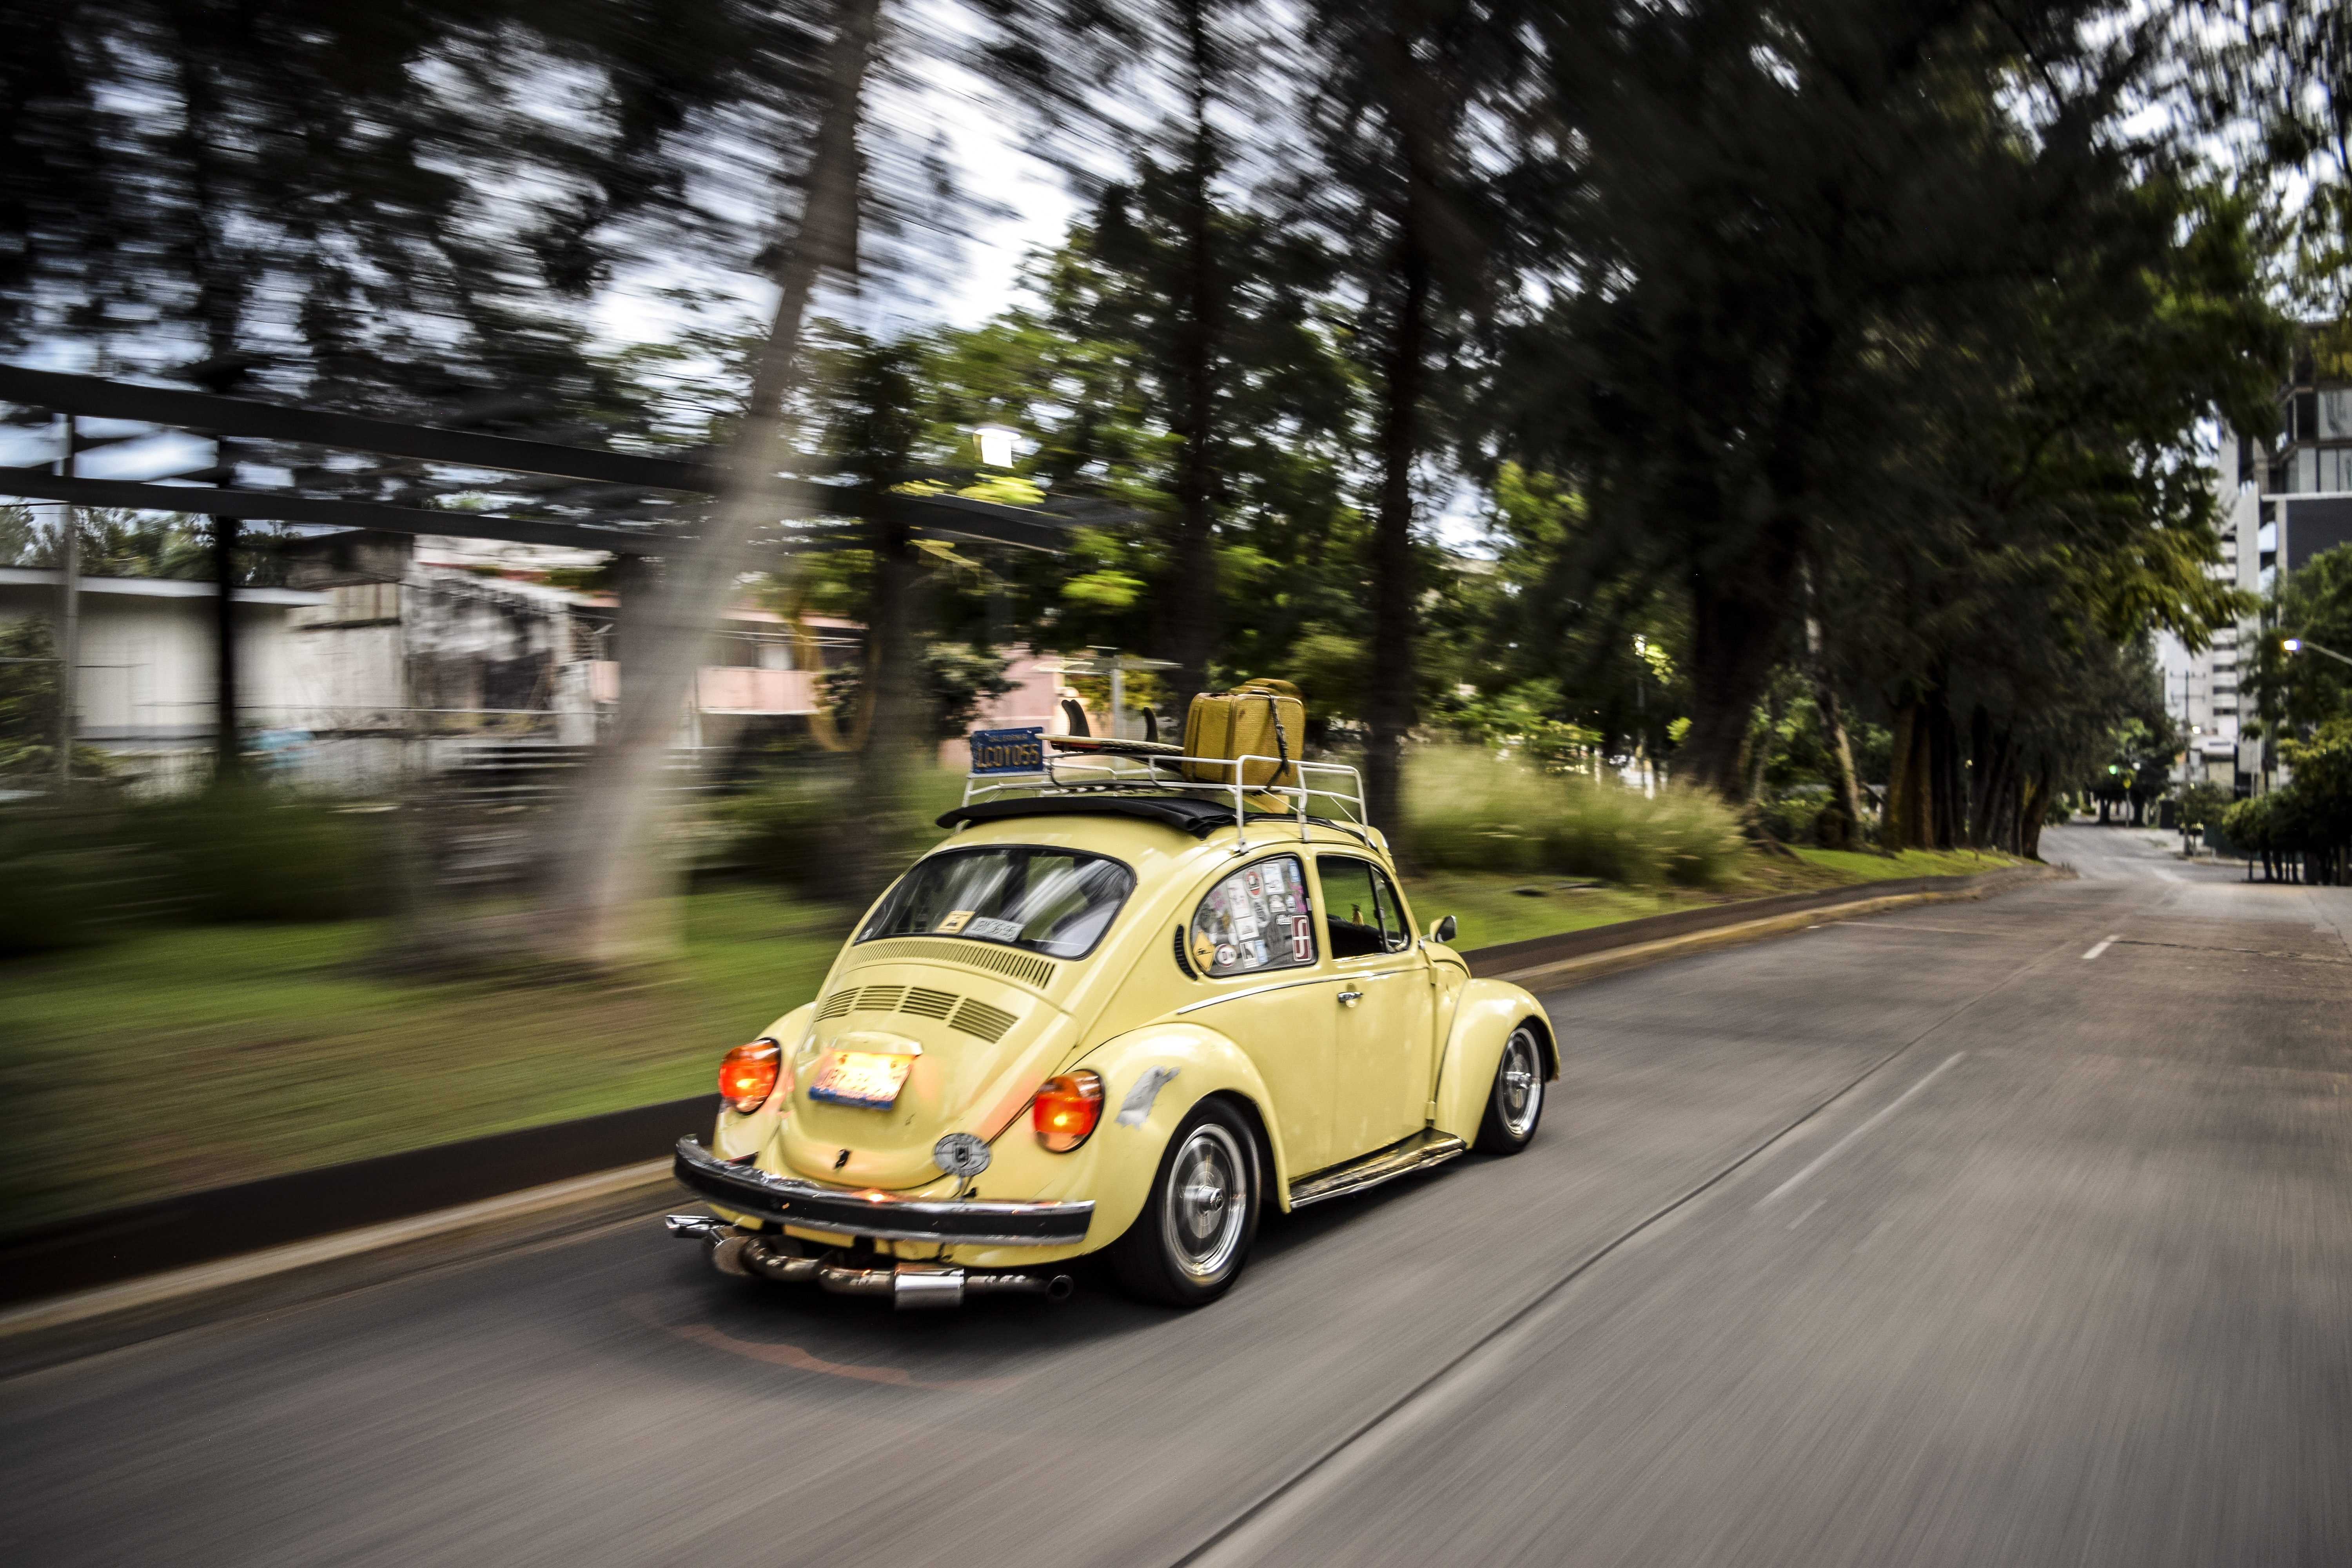 time lapse photo of running yellow Volkswagen Beetle coupe on road